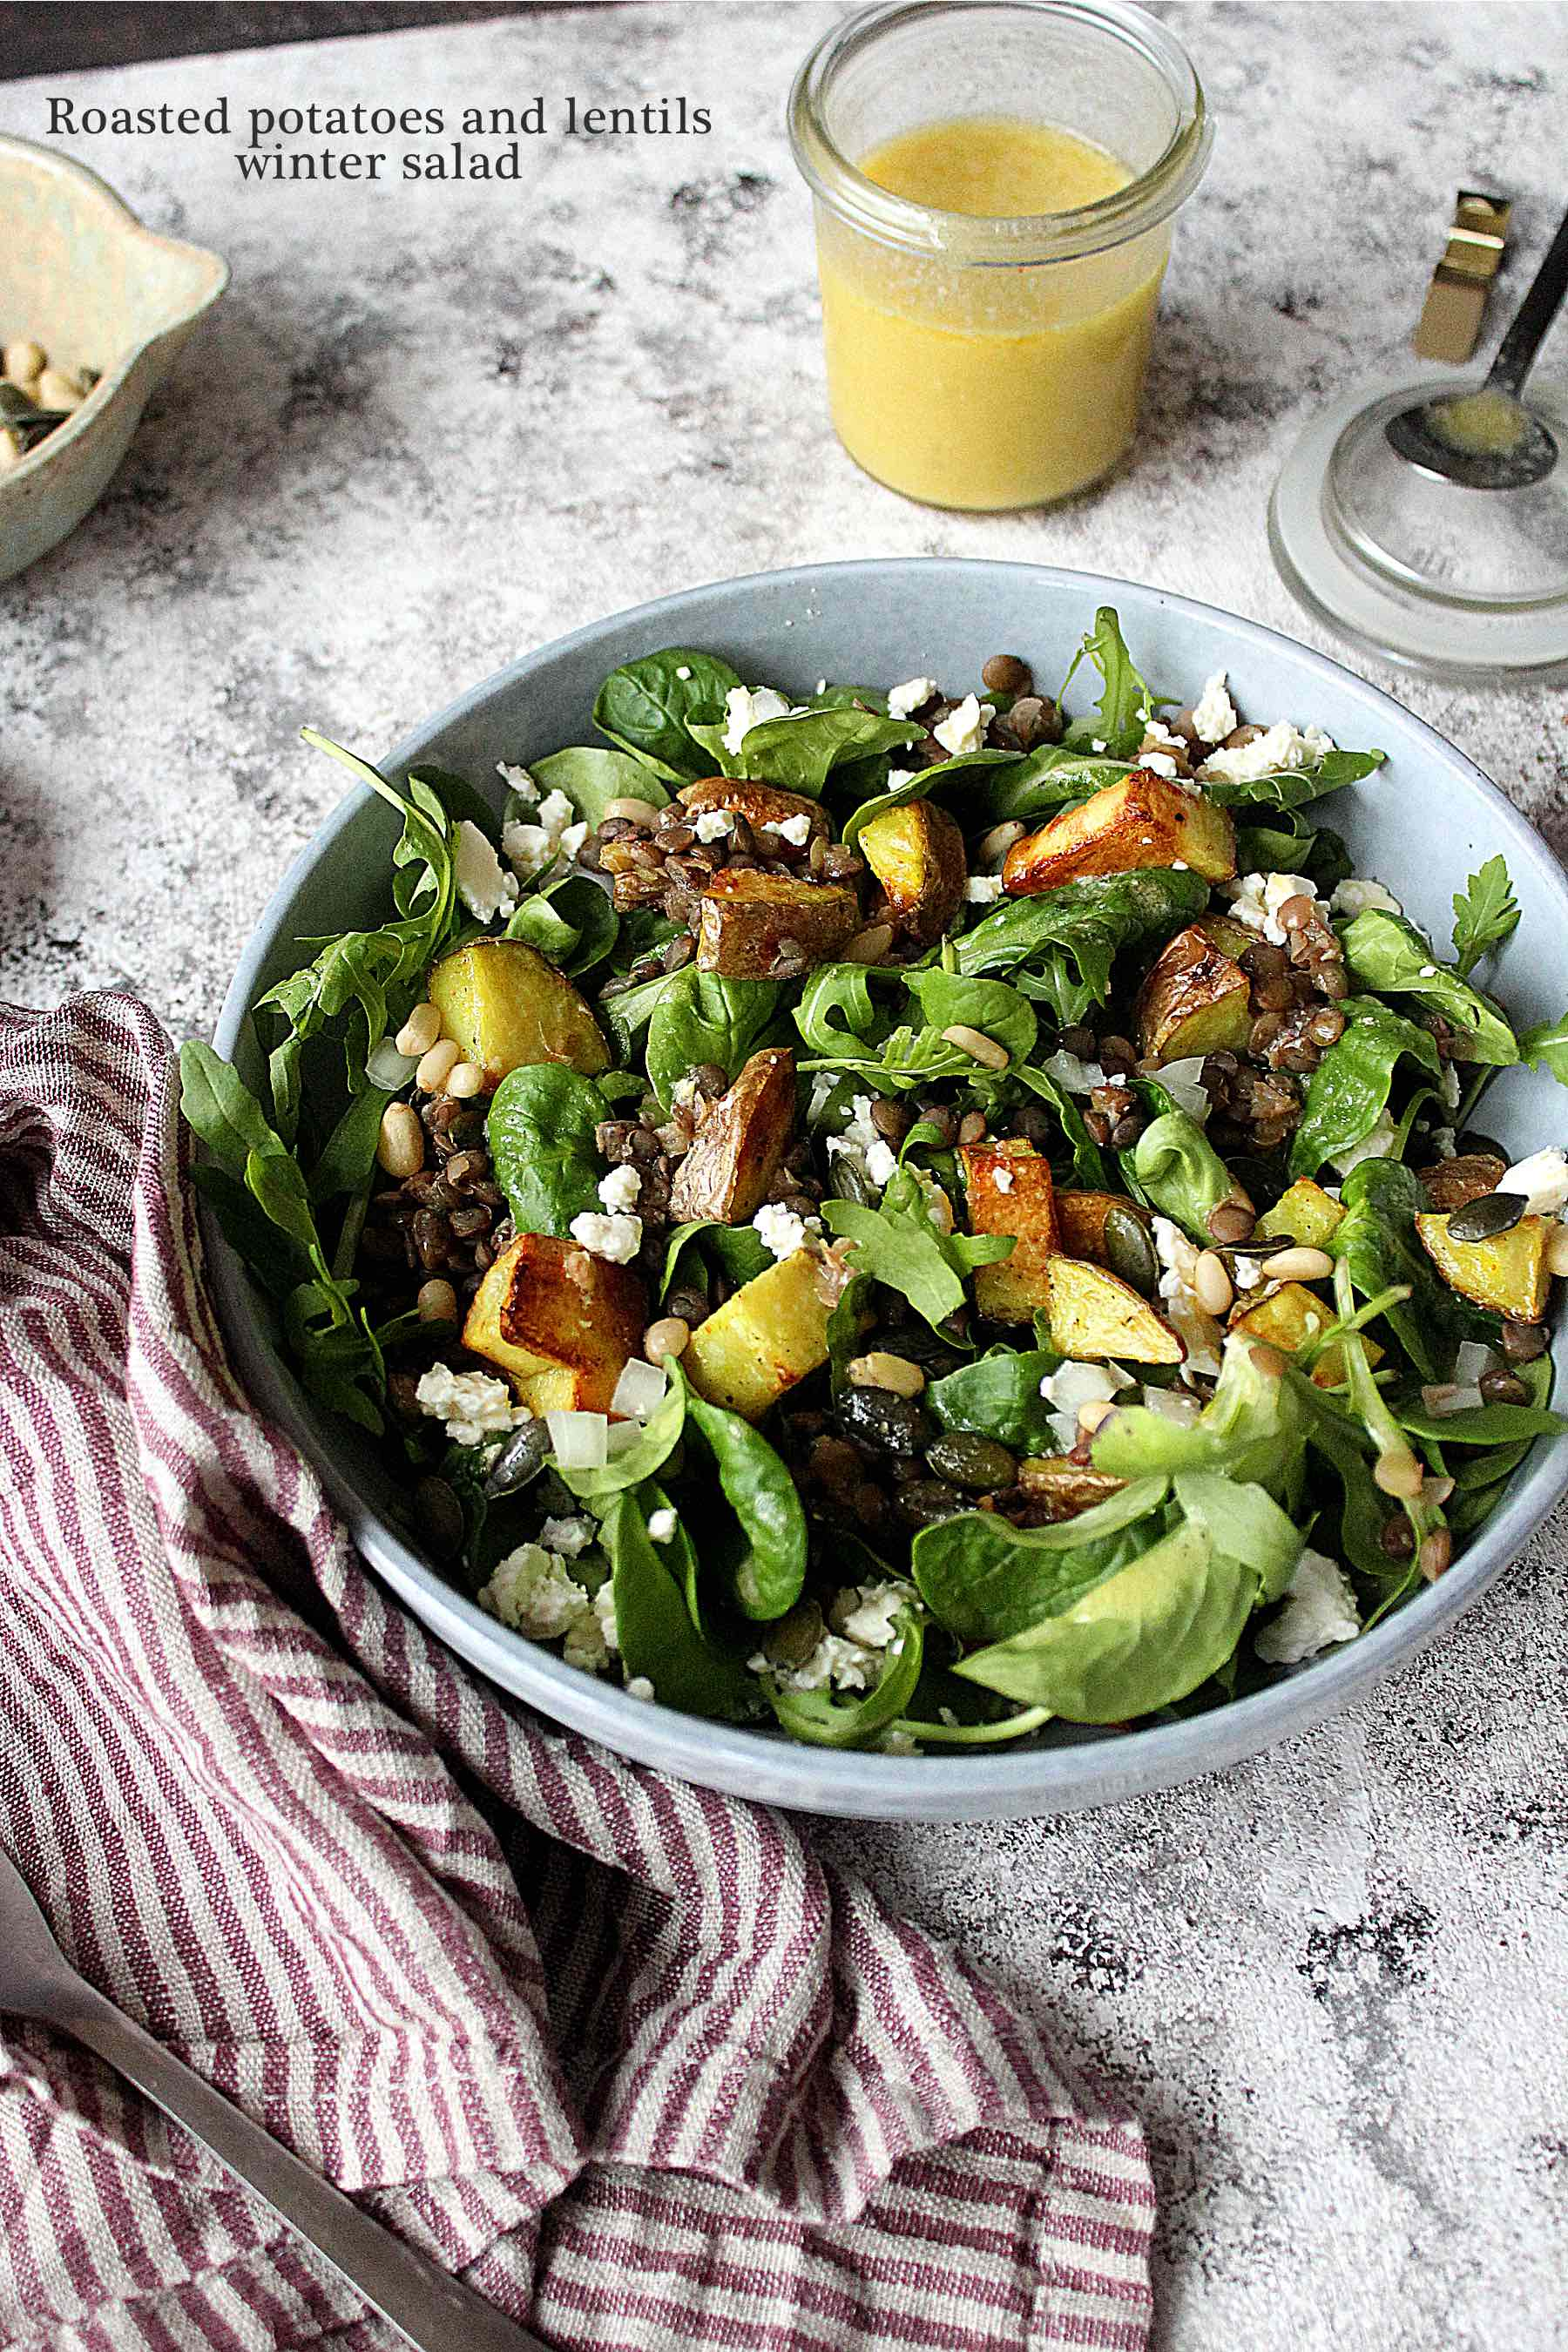 Roasted potatoes and lentils Winter salad